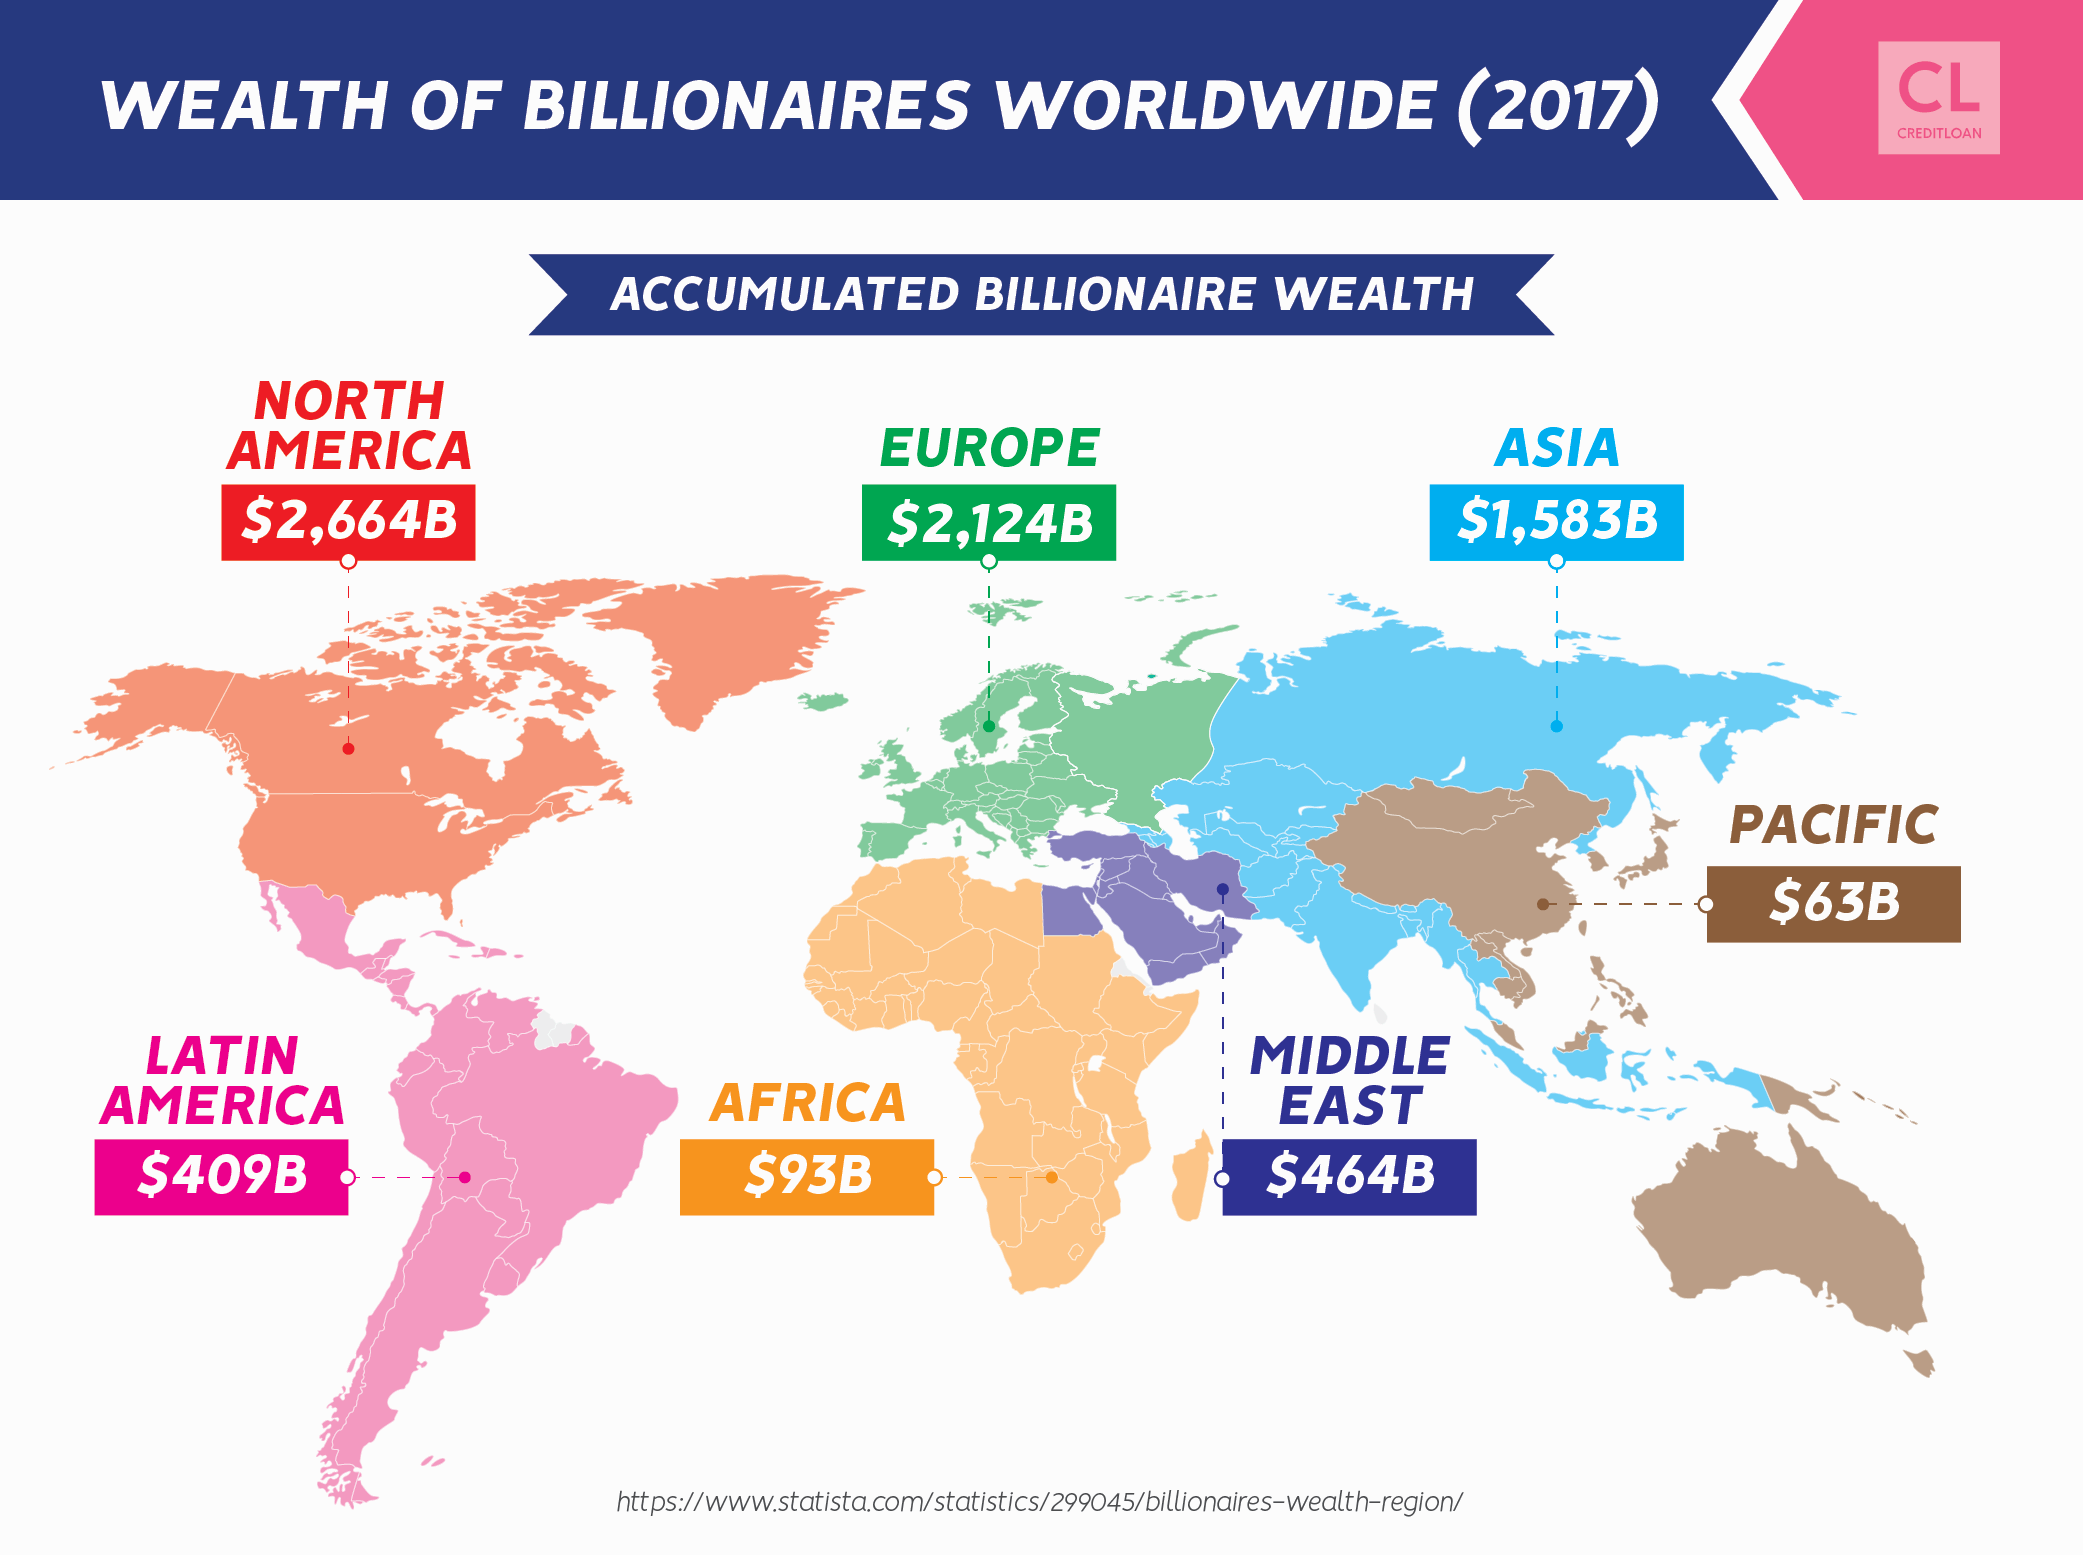 Wealth of Billionaires Worldwide in 2017